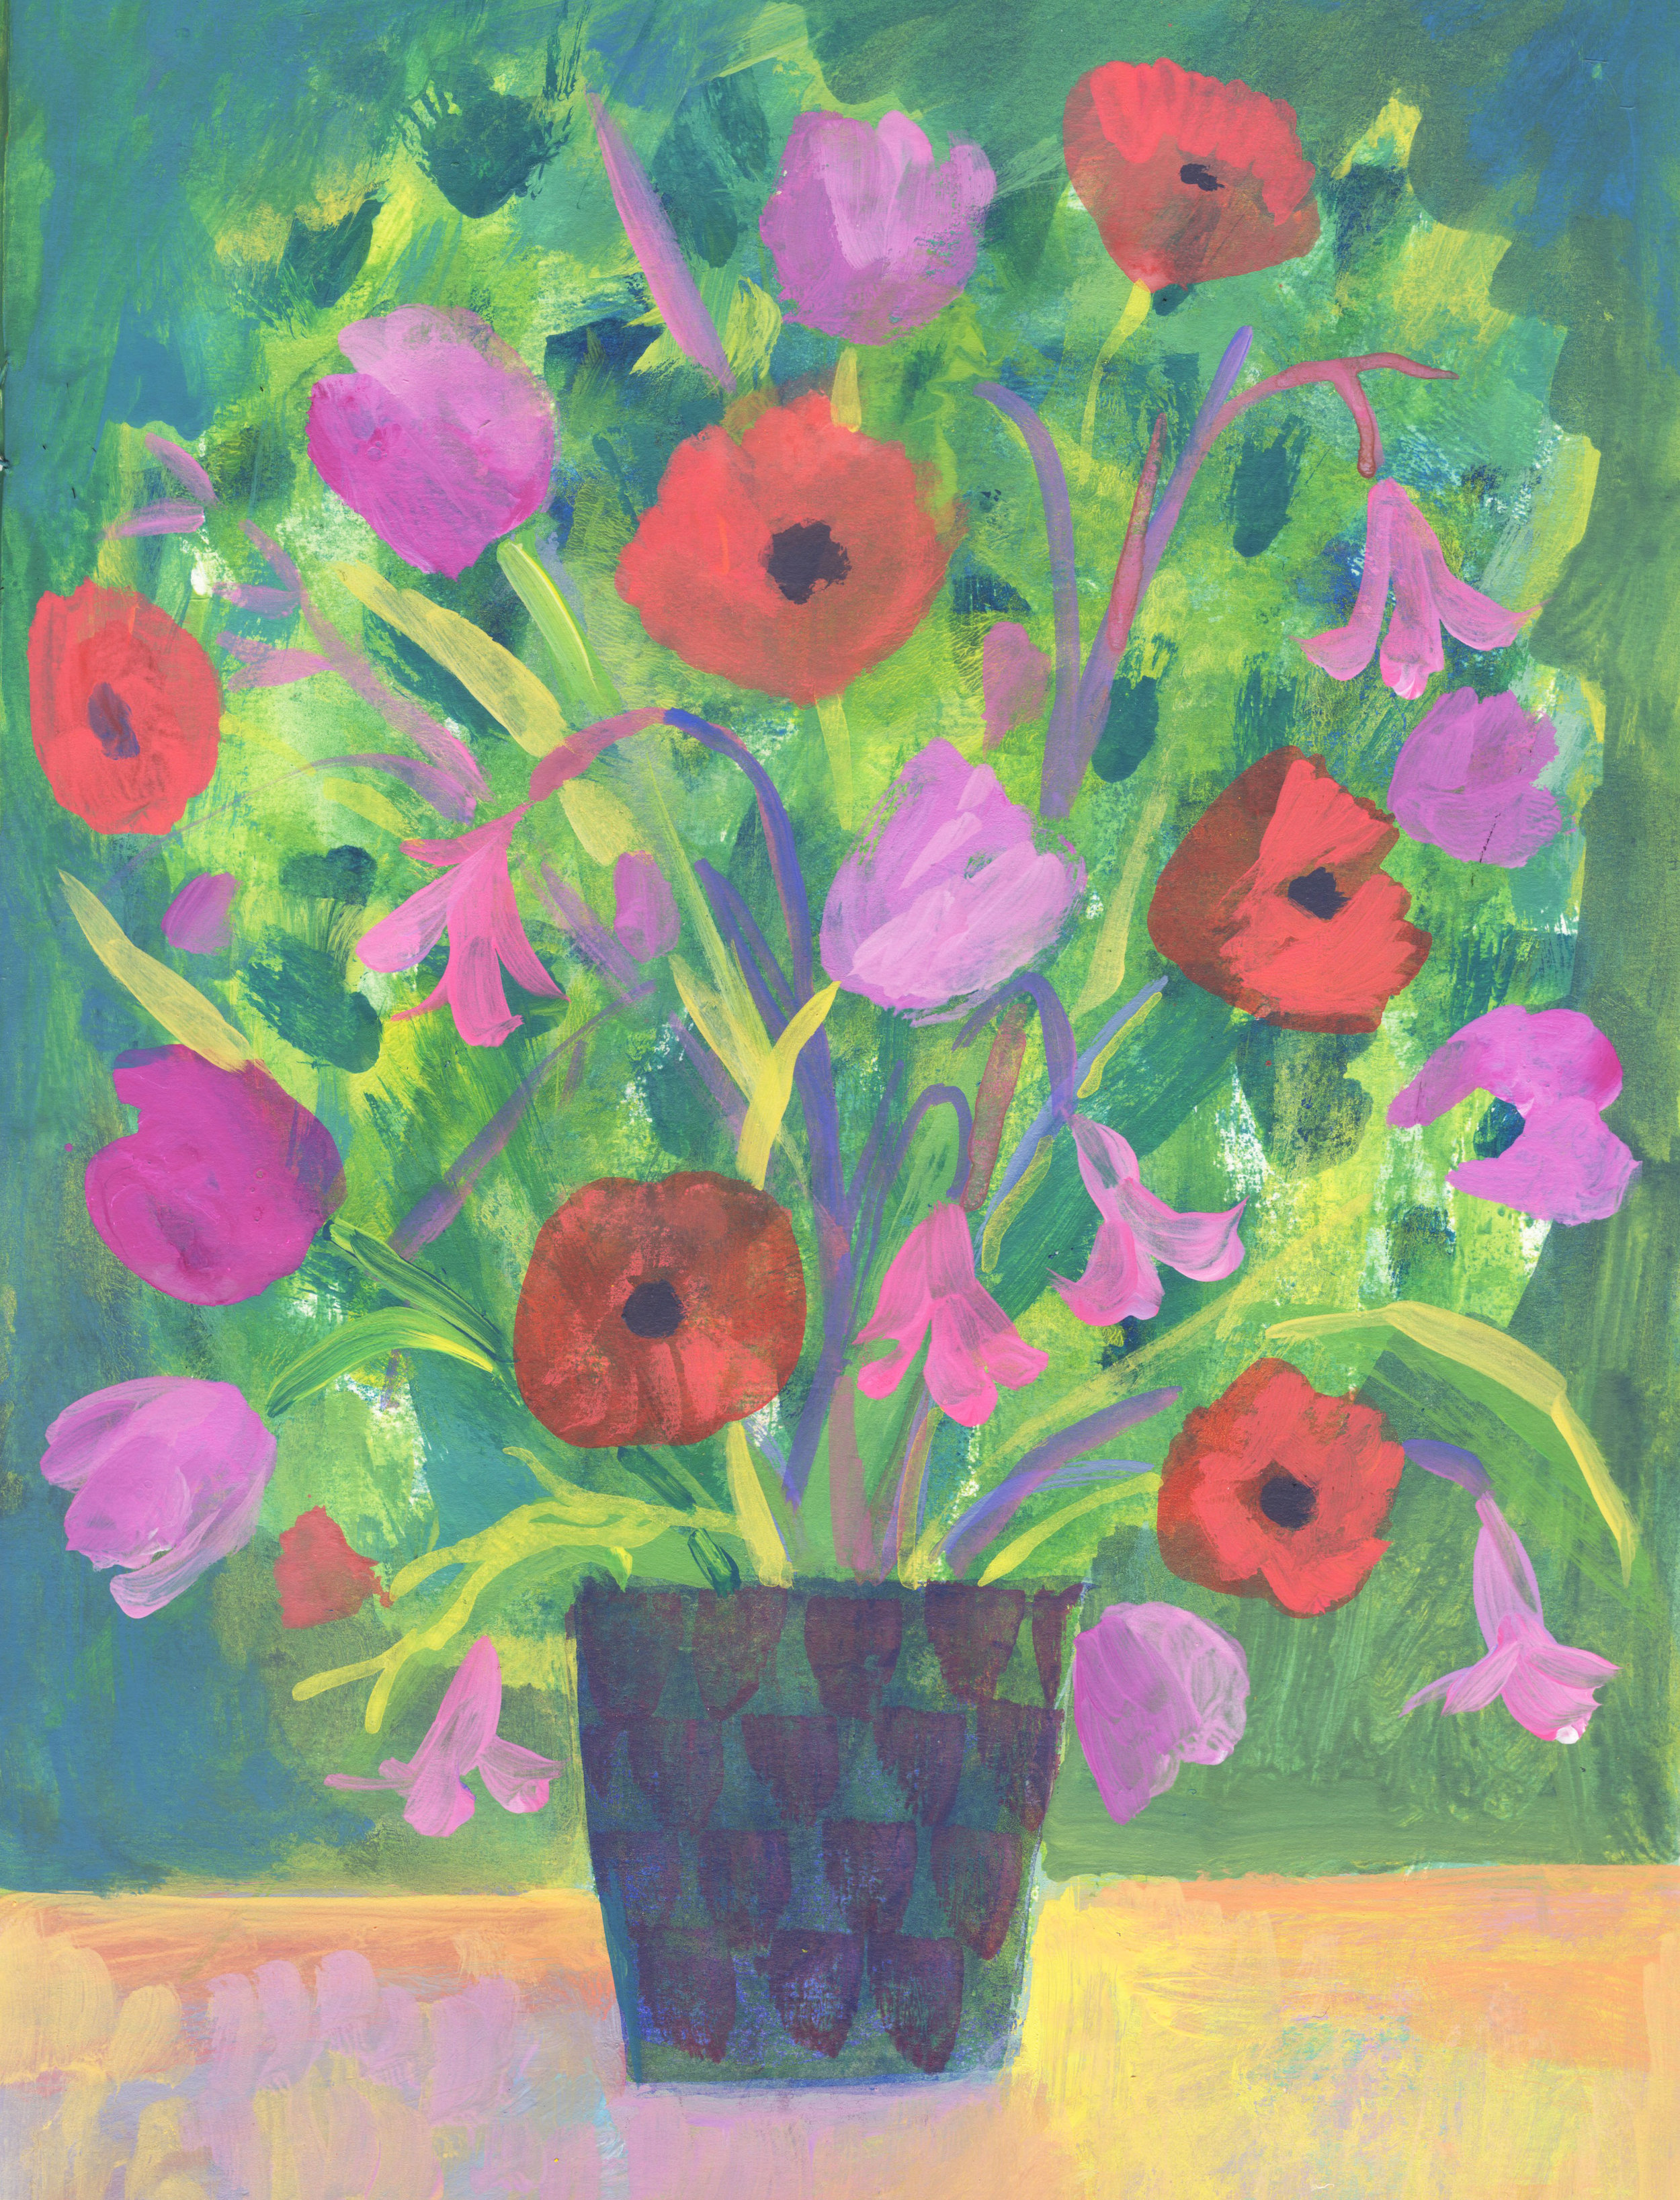 red-poppies-and-loose-pink-by-gabriella-buckingham.jpg